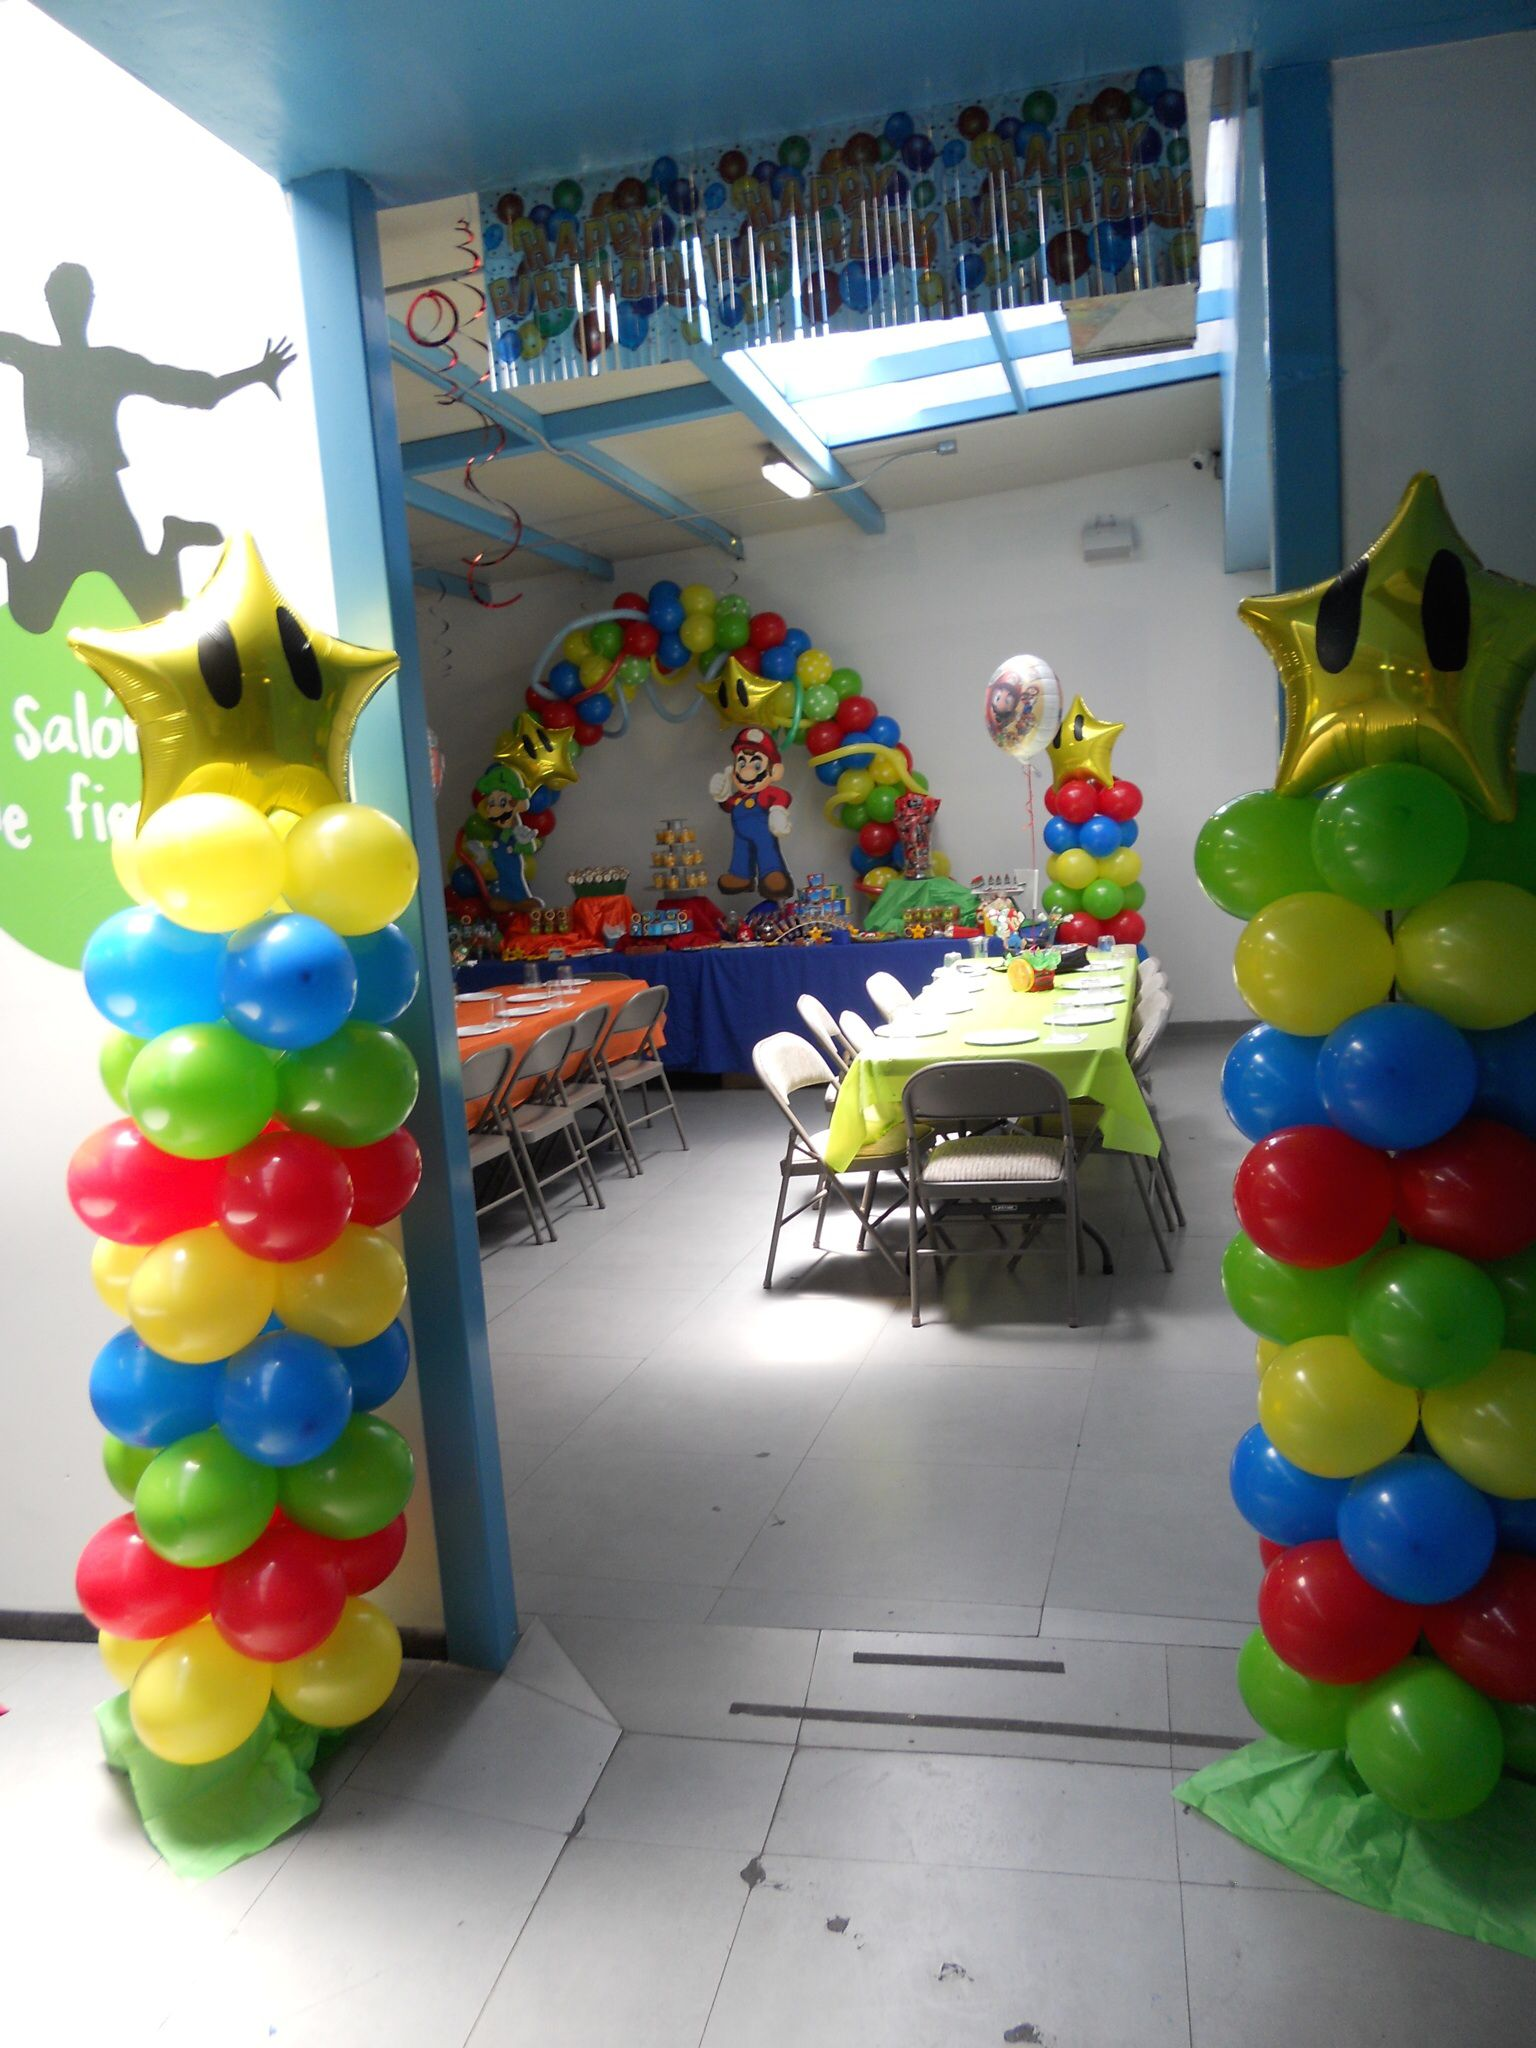 Decoración Con Globos Super Mario Bros Mario Birthday Party Super Mario Birthday Party Super Mario Bros Party